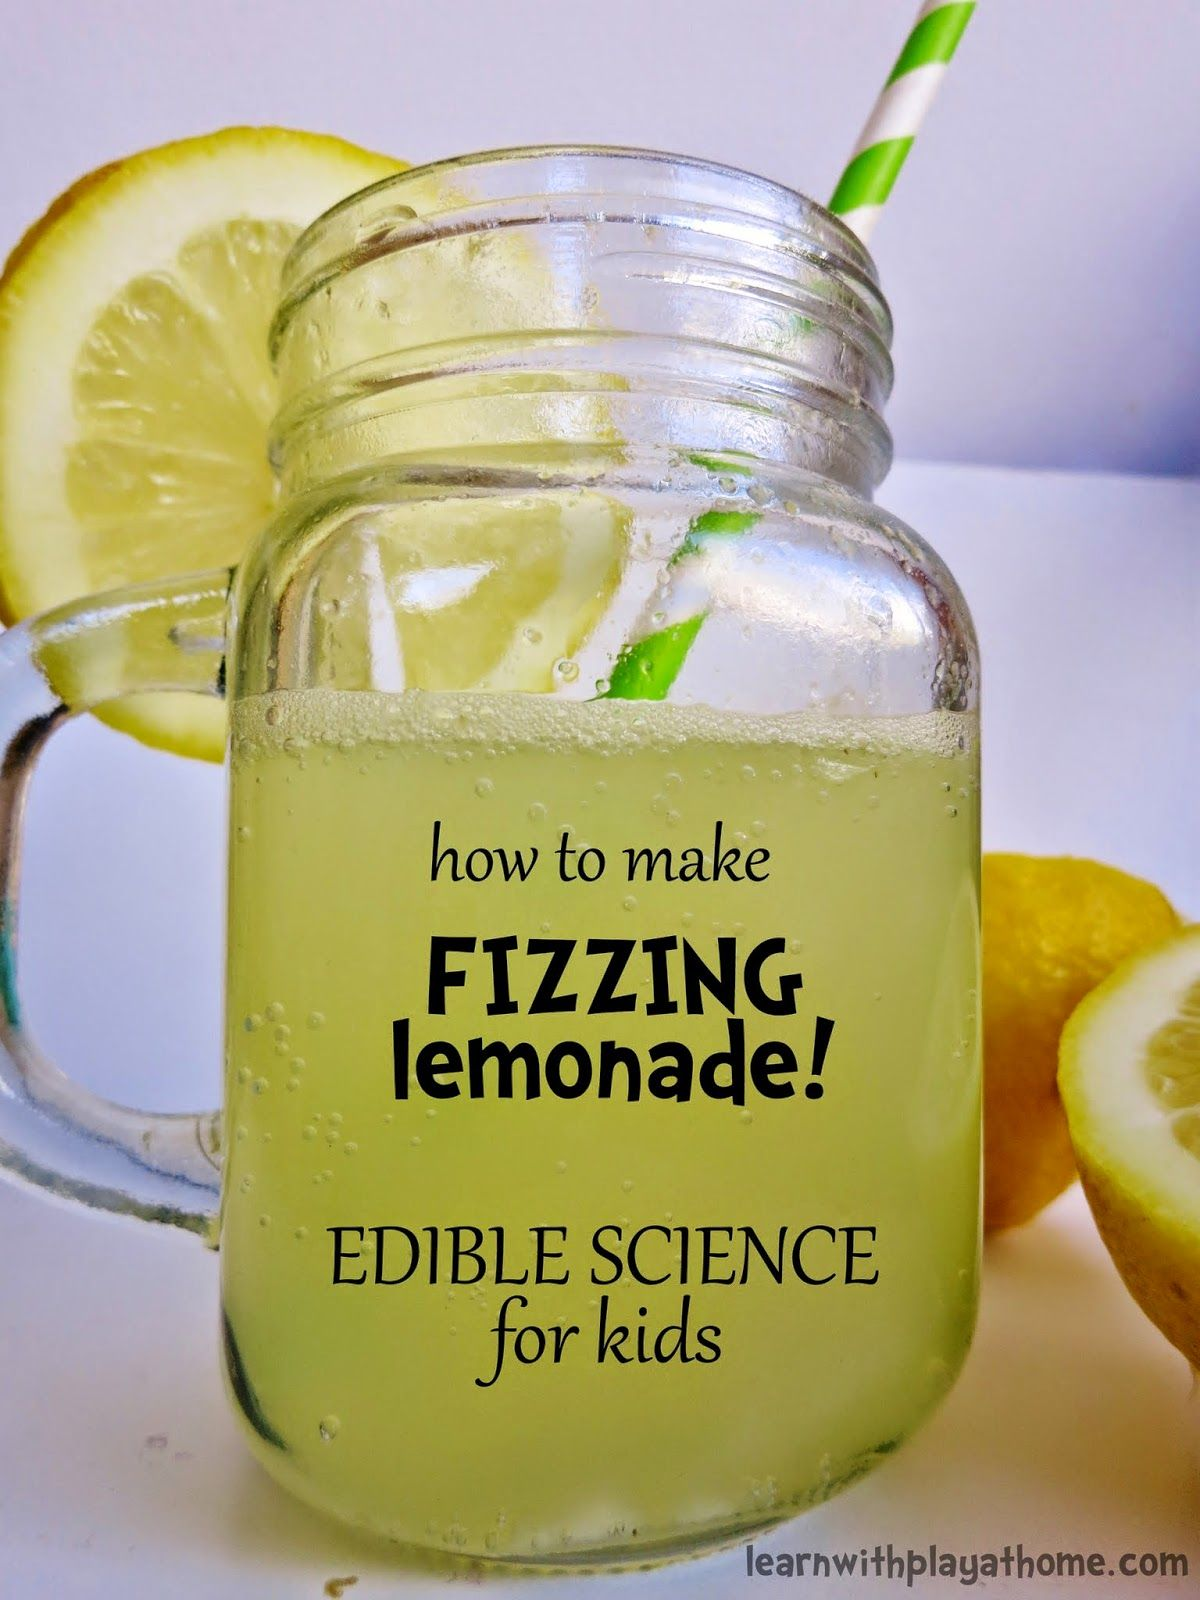 How To Make Fizzing Lemonade Edible Science For Kids